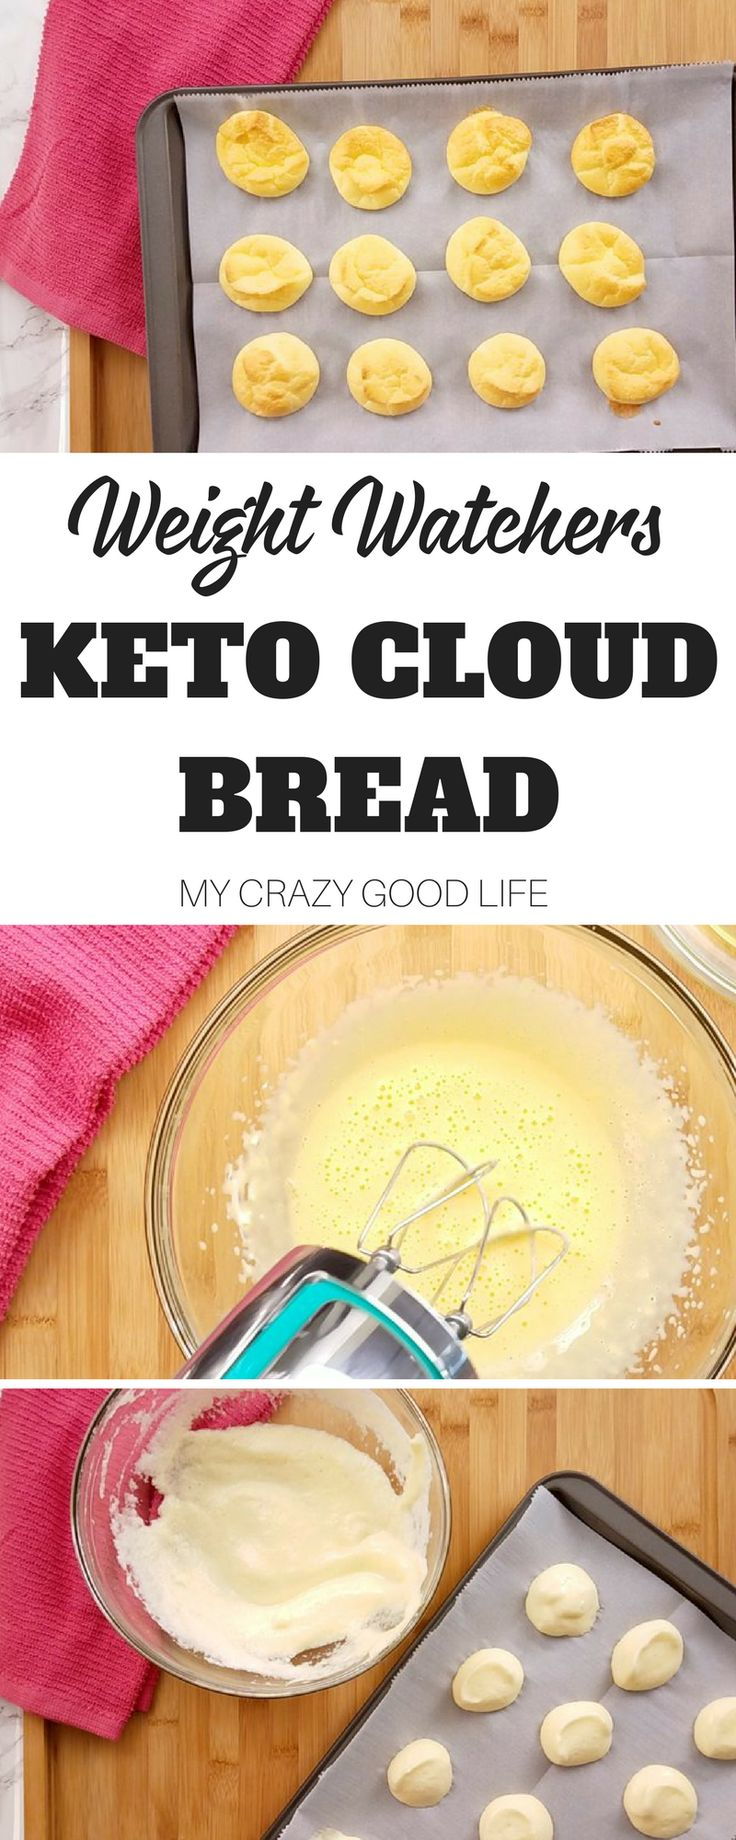 The new Weight Watchers Freestyle program allows for a lot of things, bread isn't really one of them. This recipe for Weight Watchers keto cloud bread is super low in carbs and points! #weightwatchers #smartpoints #freestyle #recipes via @bludlum